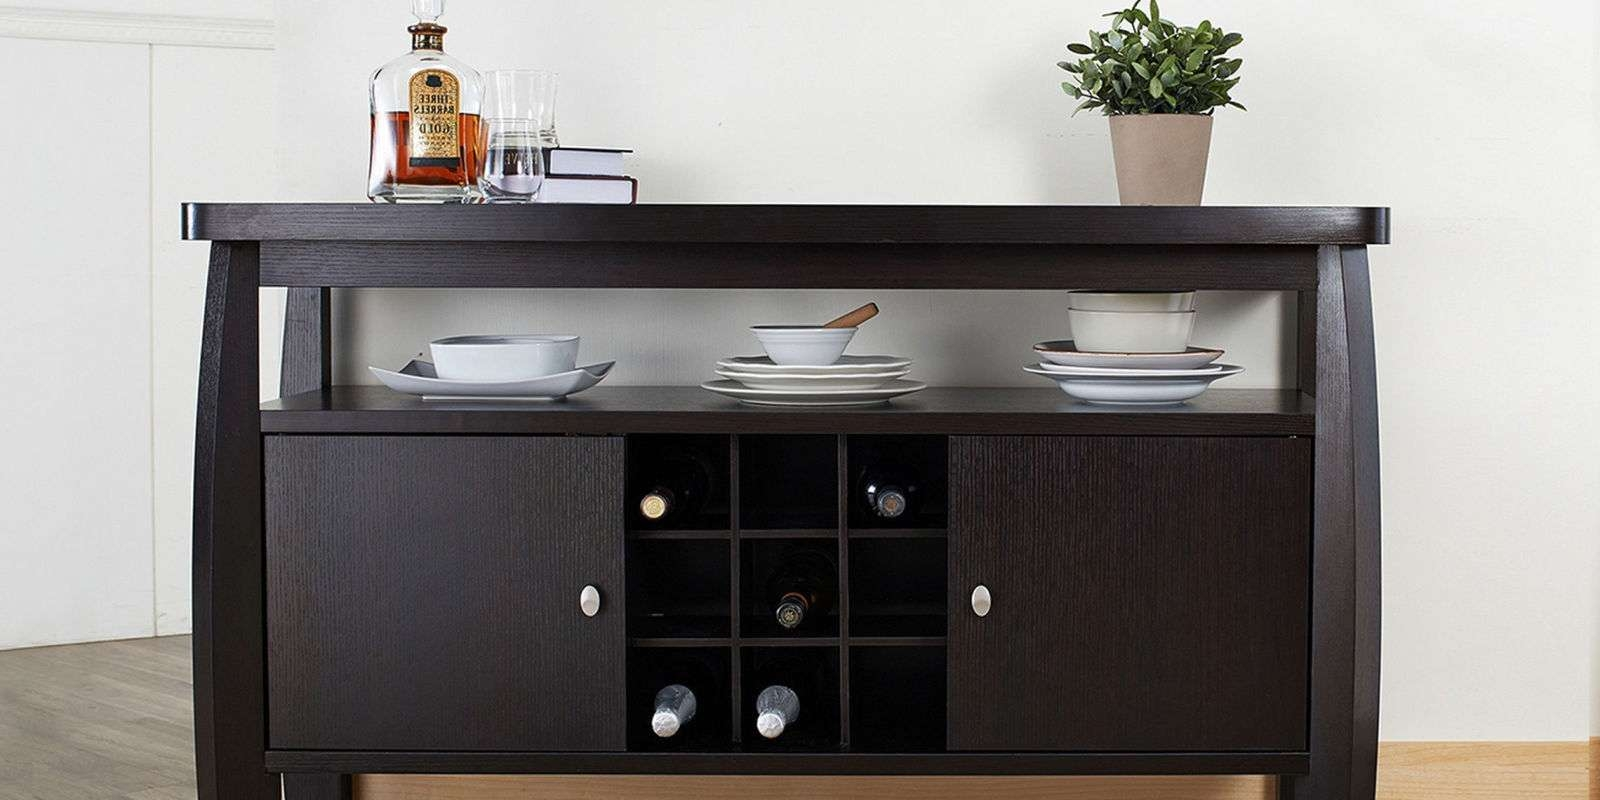 11 Best Sideboards And Buffets In 2018 – Reviews Of Sideboards Intended For Dining Room Sideboards And Buffets (Gallery 11 of 20)